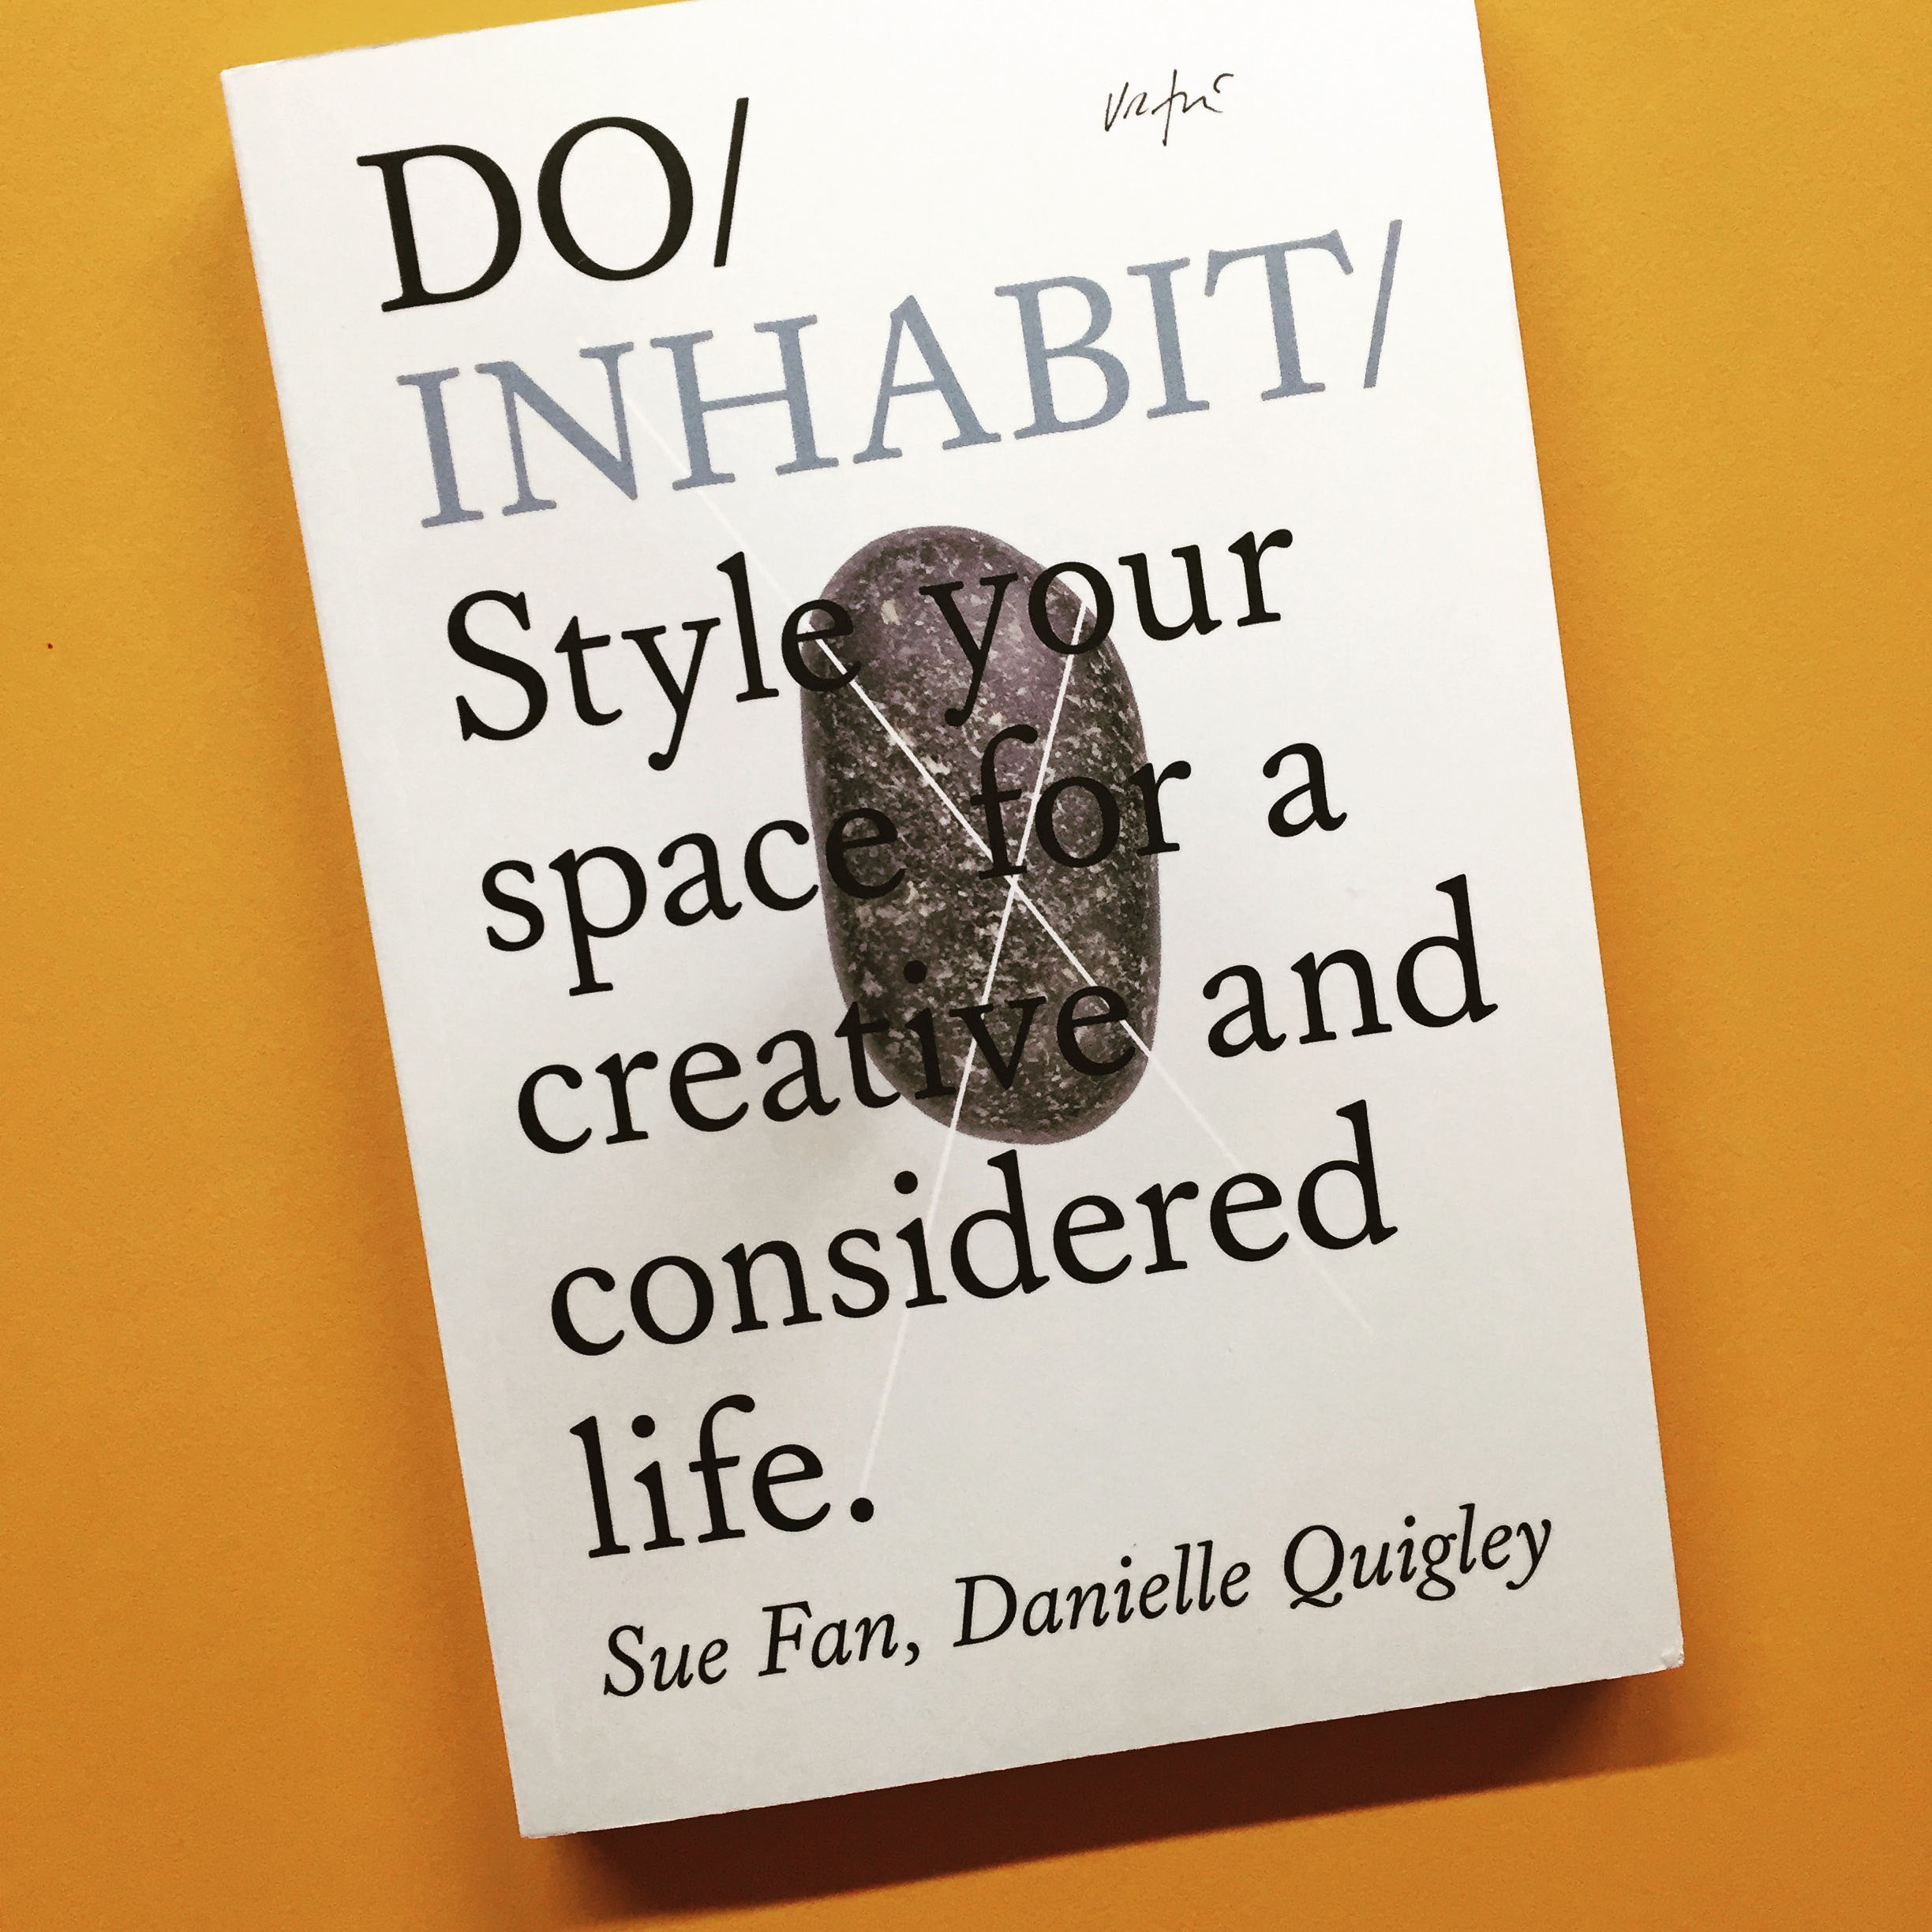 Book design for The Do Books by James Victore